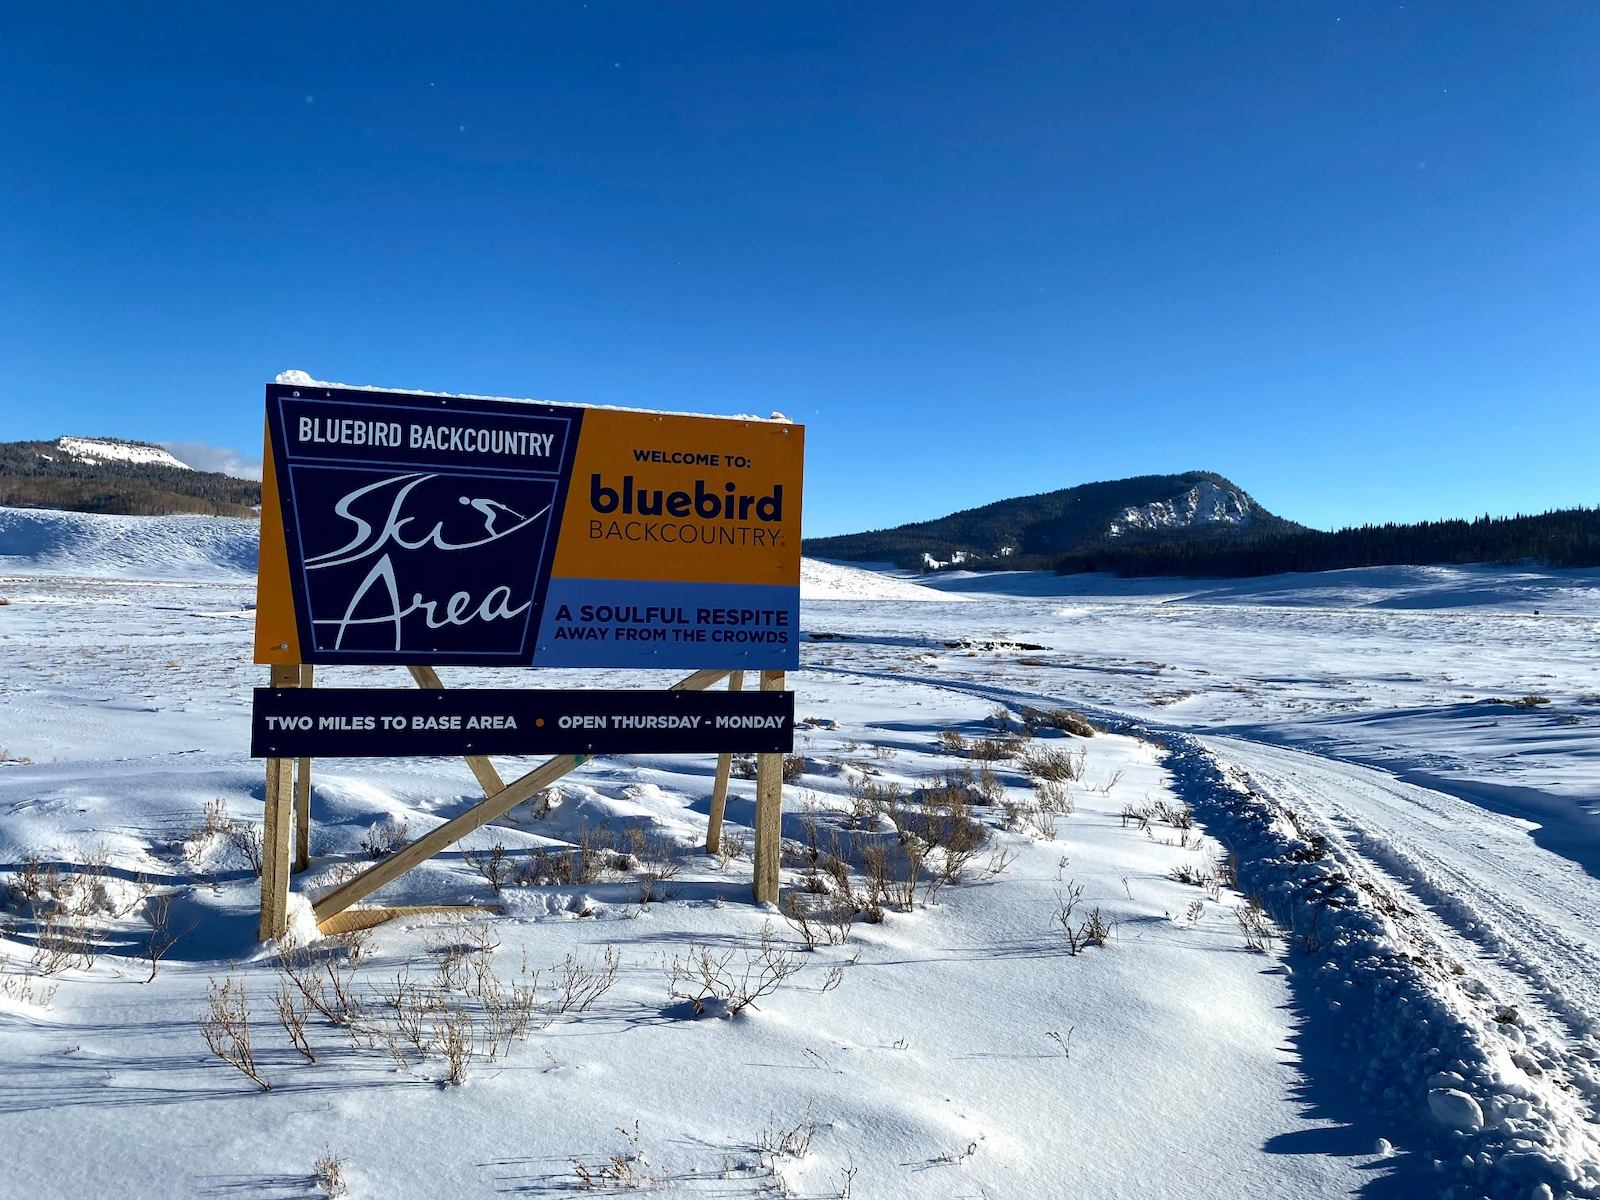 Image of the sign for Bluebird Backcountry in Colorado